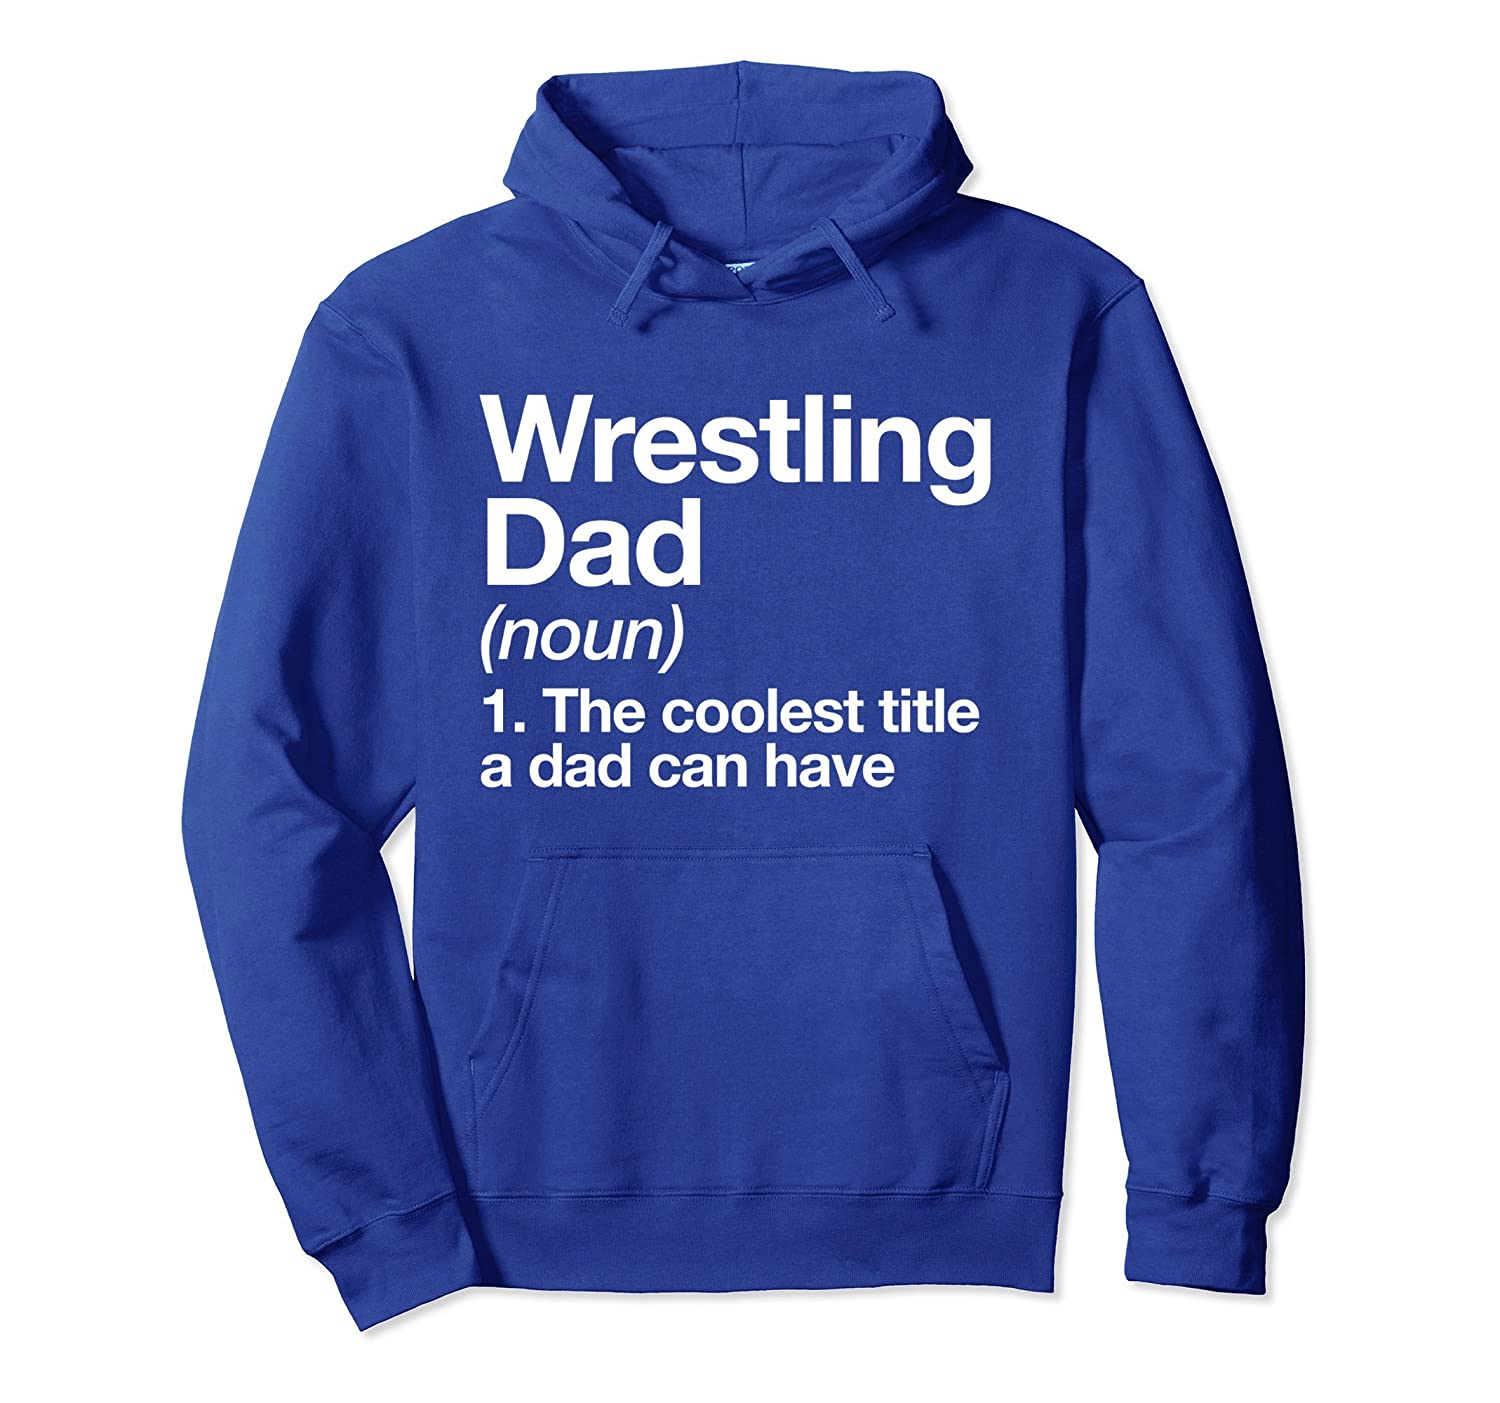 Wrestling Dad Definition Hoodie Funny Sports Pullover-TH